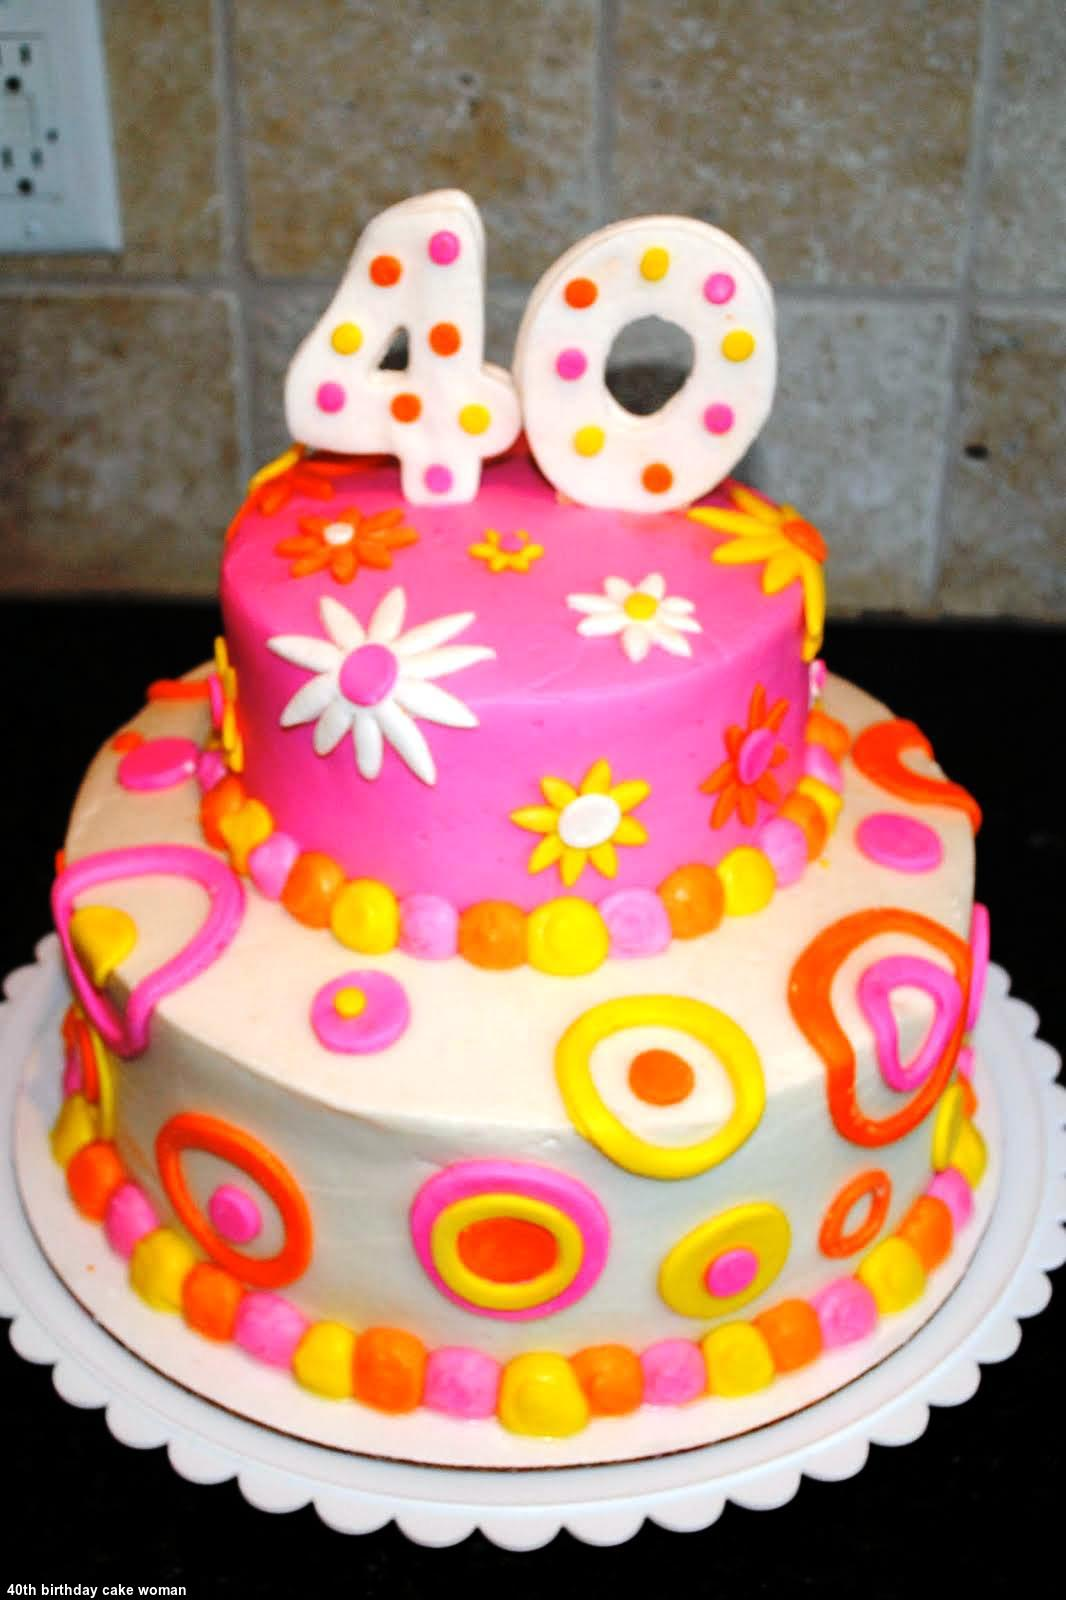 Cake Ideas For 40th Birthday Female : 40th Birthday Cake Woman Insipiration 2015 - The Best ...